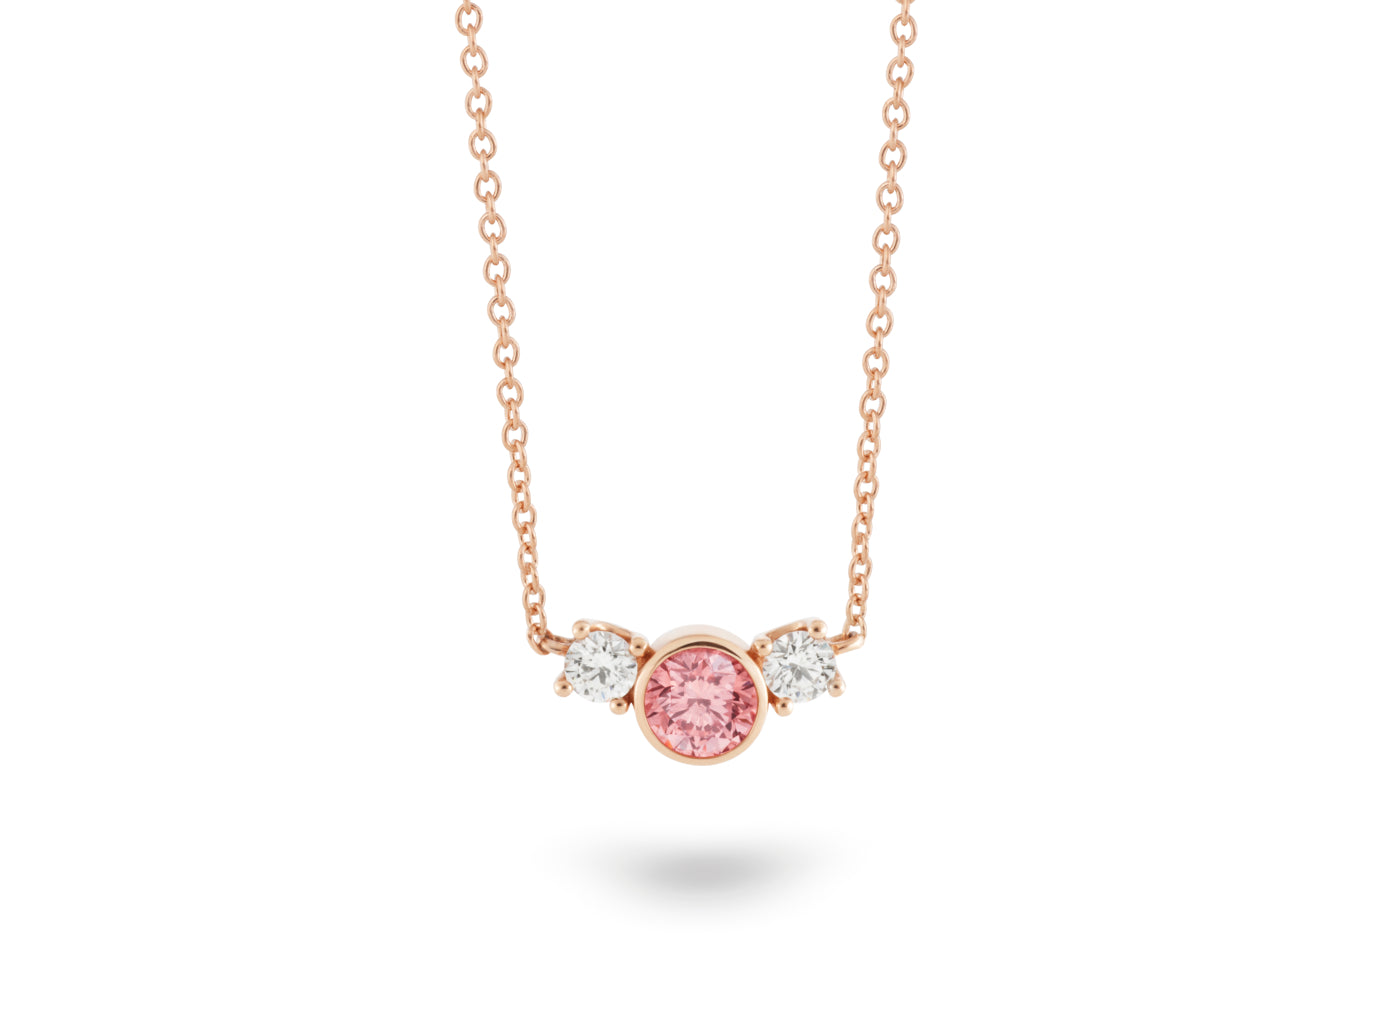 Front view of Three Stone 3/4 carat pendant with pink and white diamonds